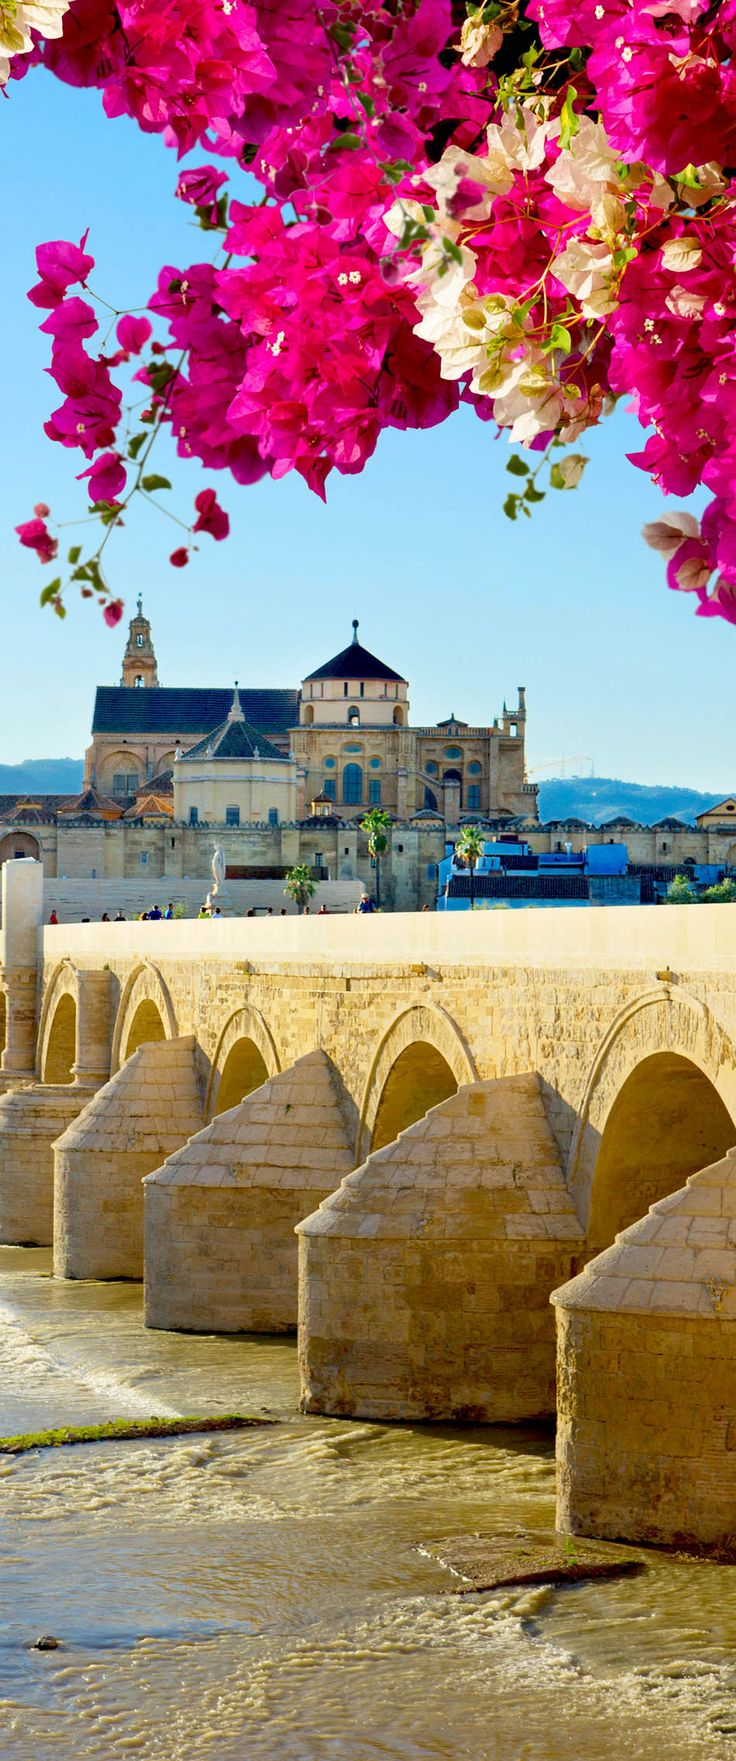 Old cathedral and roman bridge, Cordoba, Andalusia, Spain